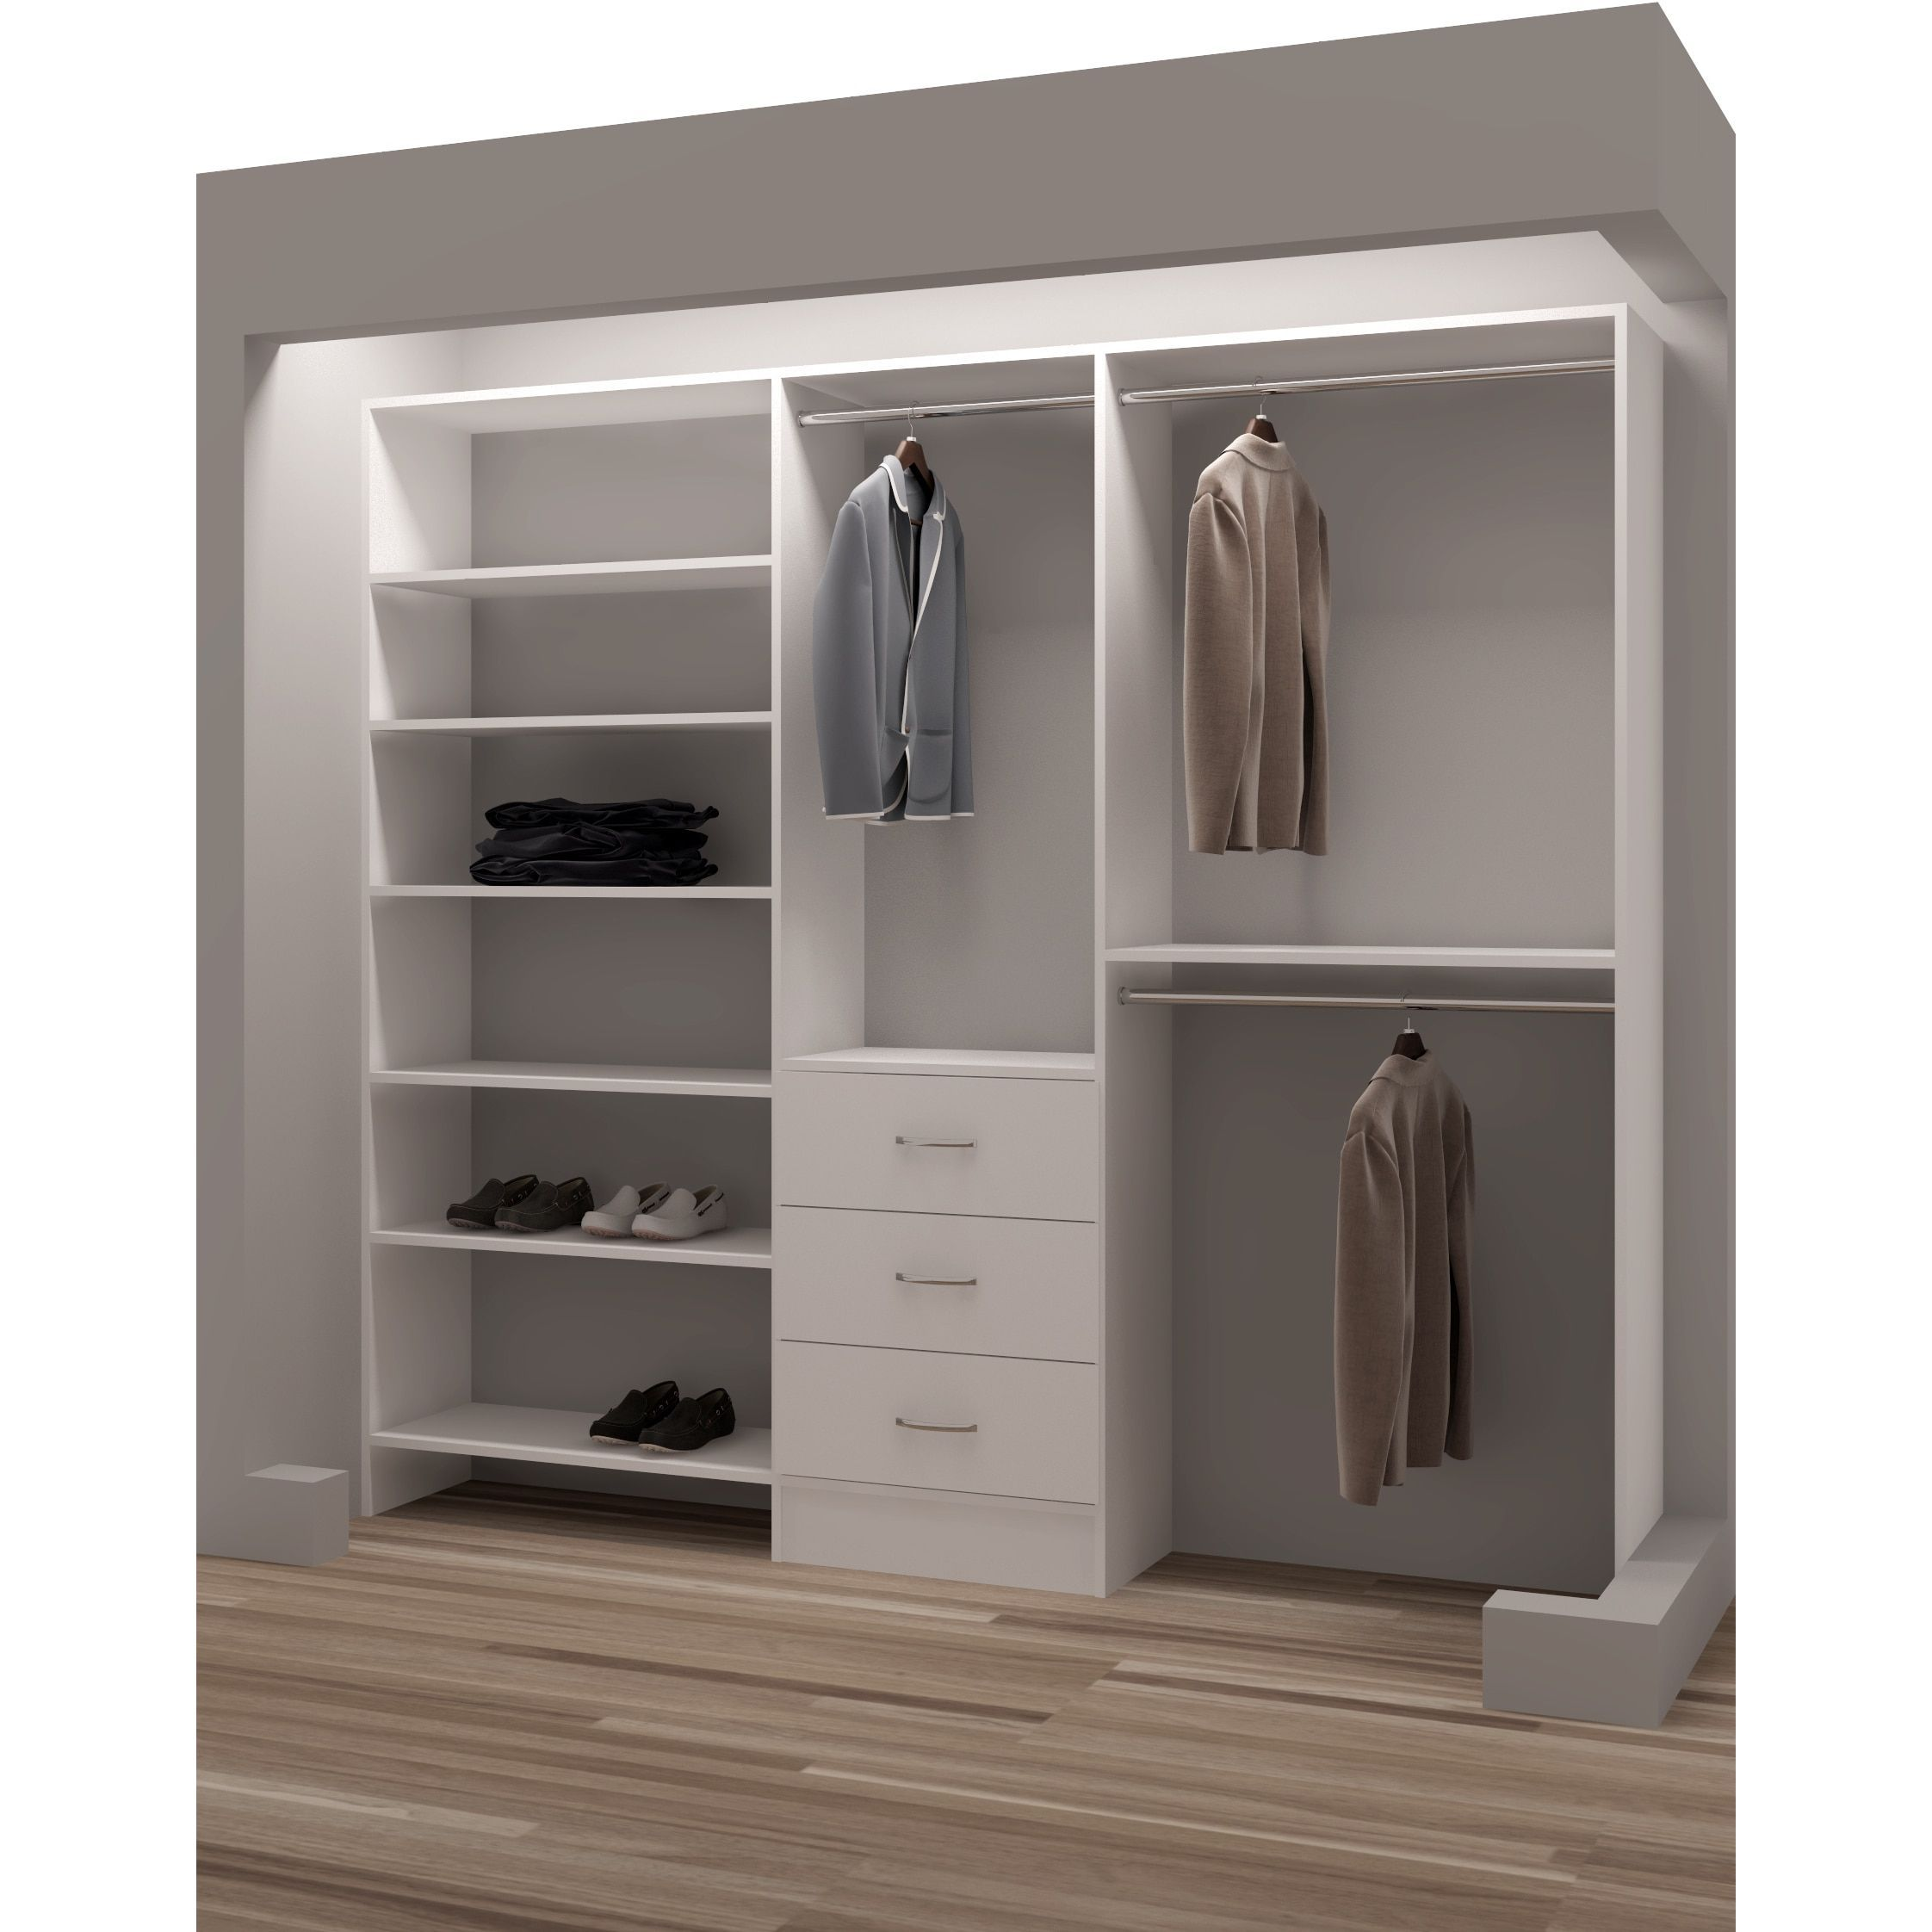 system bedrooms bedroom smart small the for ideas closet wardrobe systems storage drawers rubbermaid design with closets top x best